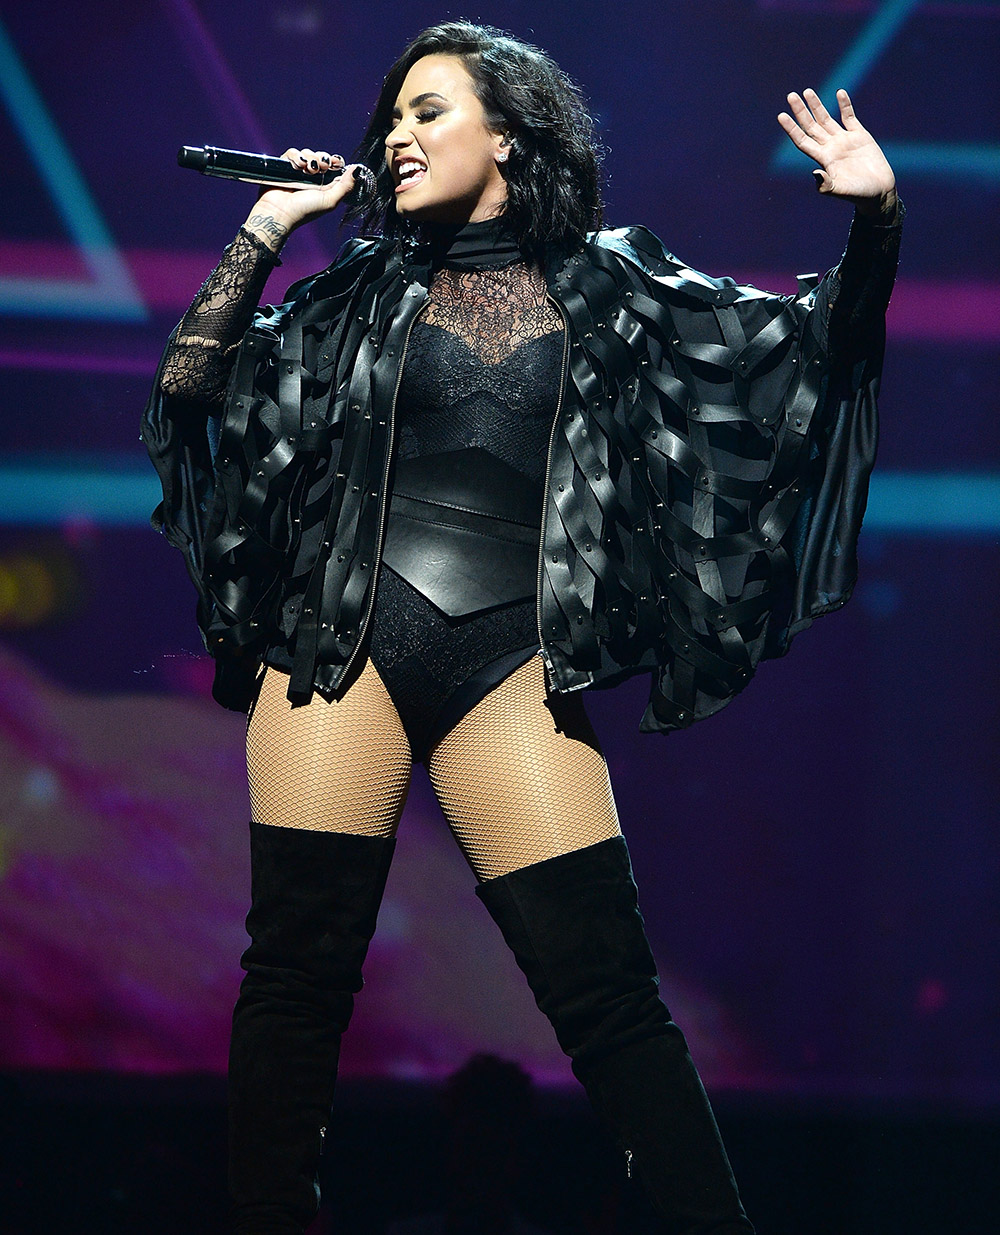 Demi Lovato Flaunts Her Amazing Curves at Brooklyn Concert